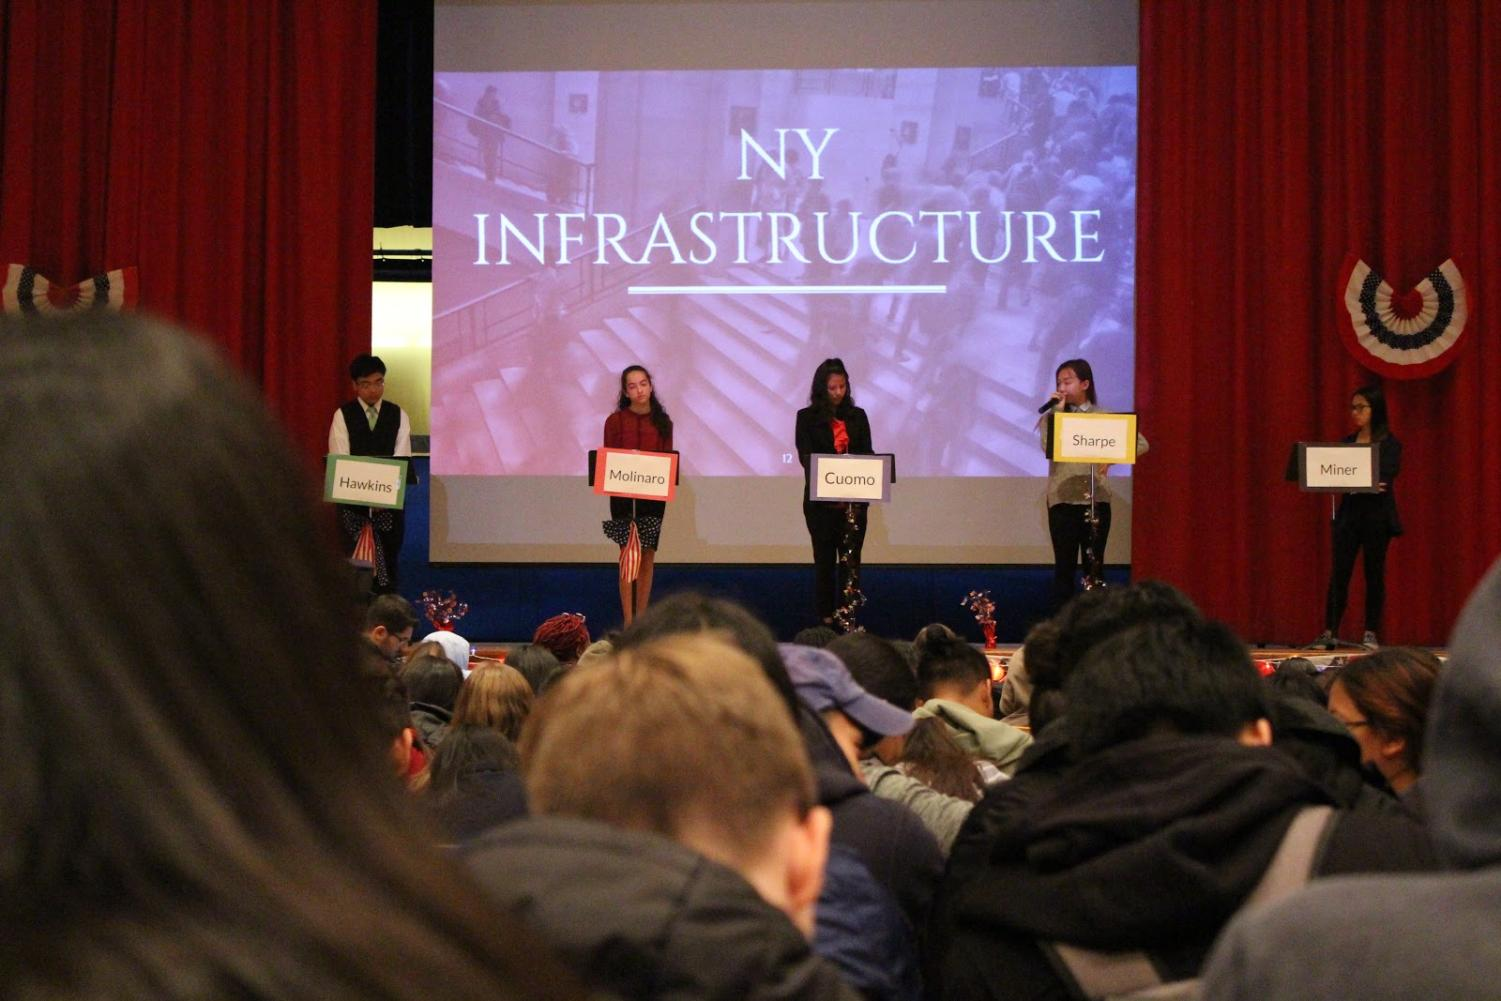 The students representing political candidates Andrew Cuomo, Marc Molinaro, Larry Sharpe, Stephanie Miner, and Howie Hawkins engaging in a passionate debate revolving around New York Infrastructure.